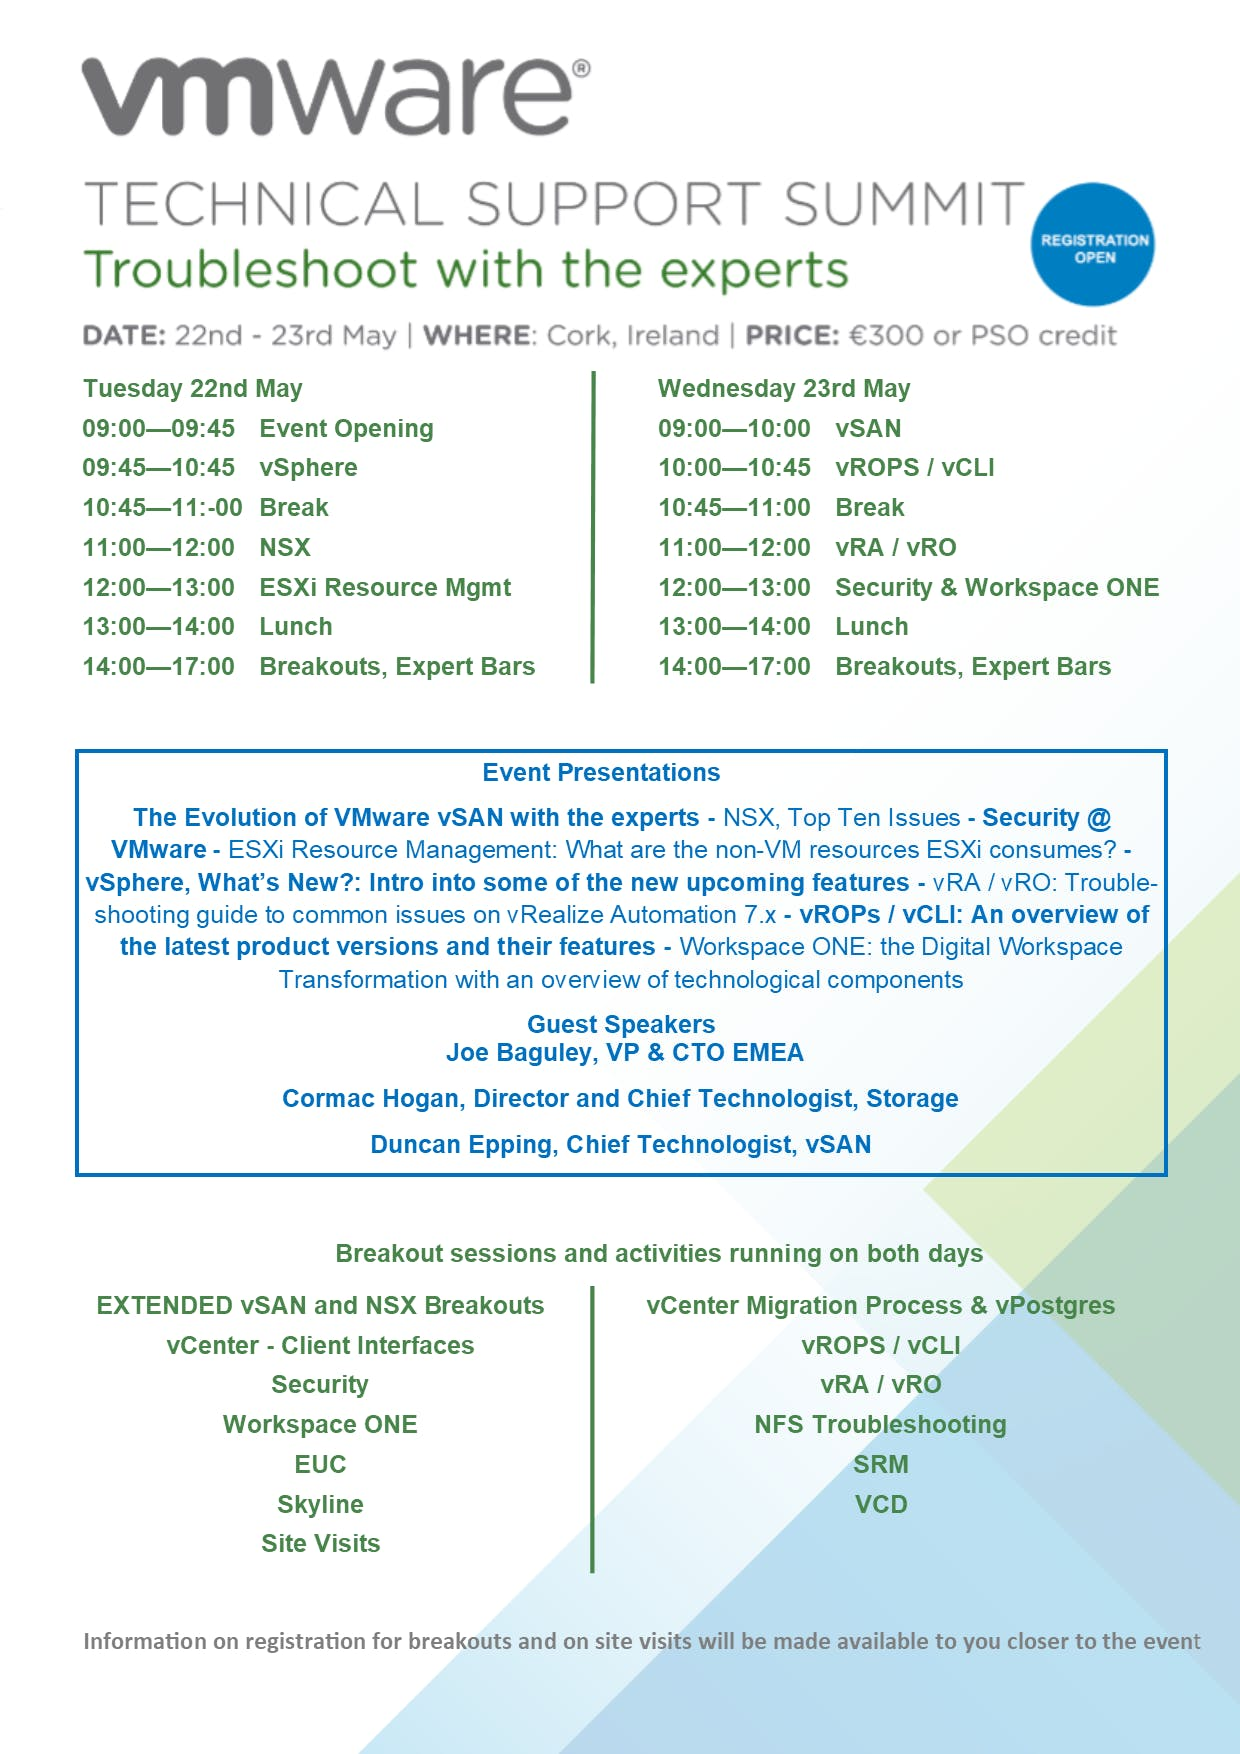 VMware Technical Support Summit - 22nd May